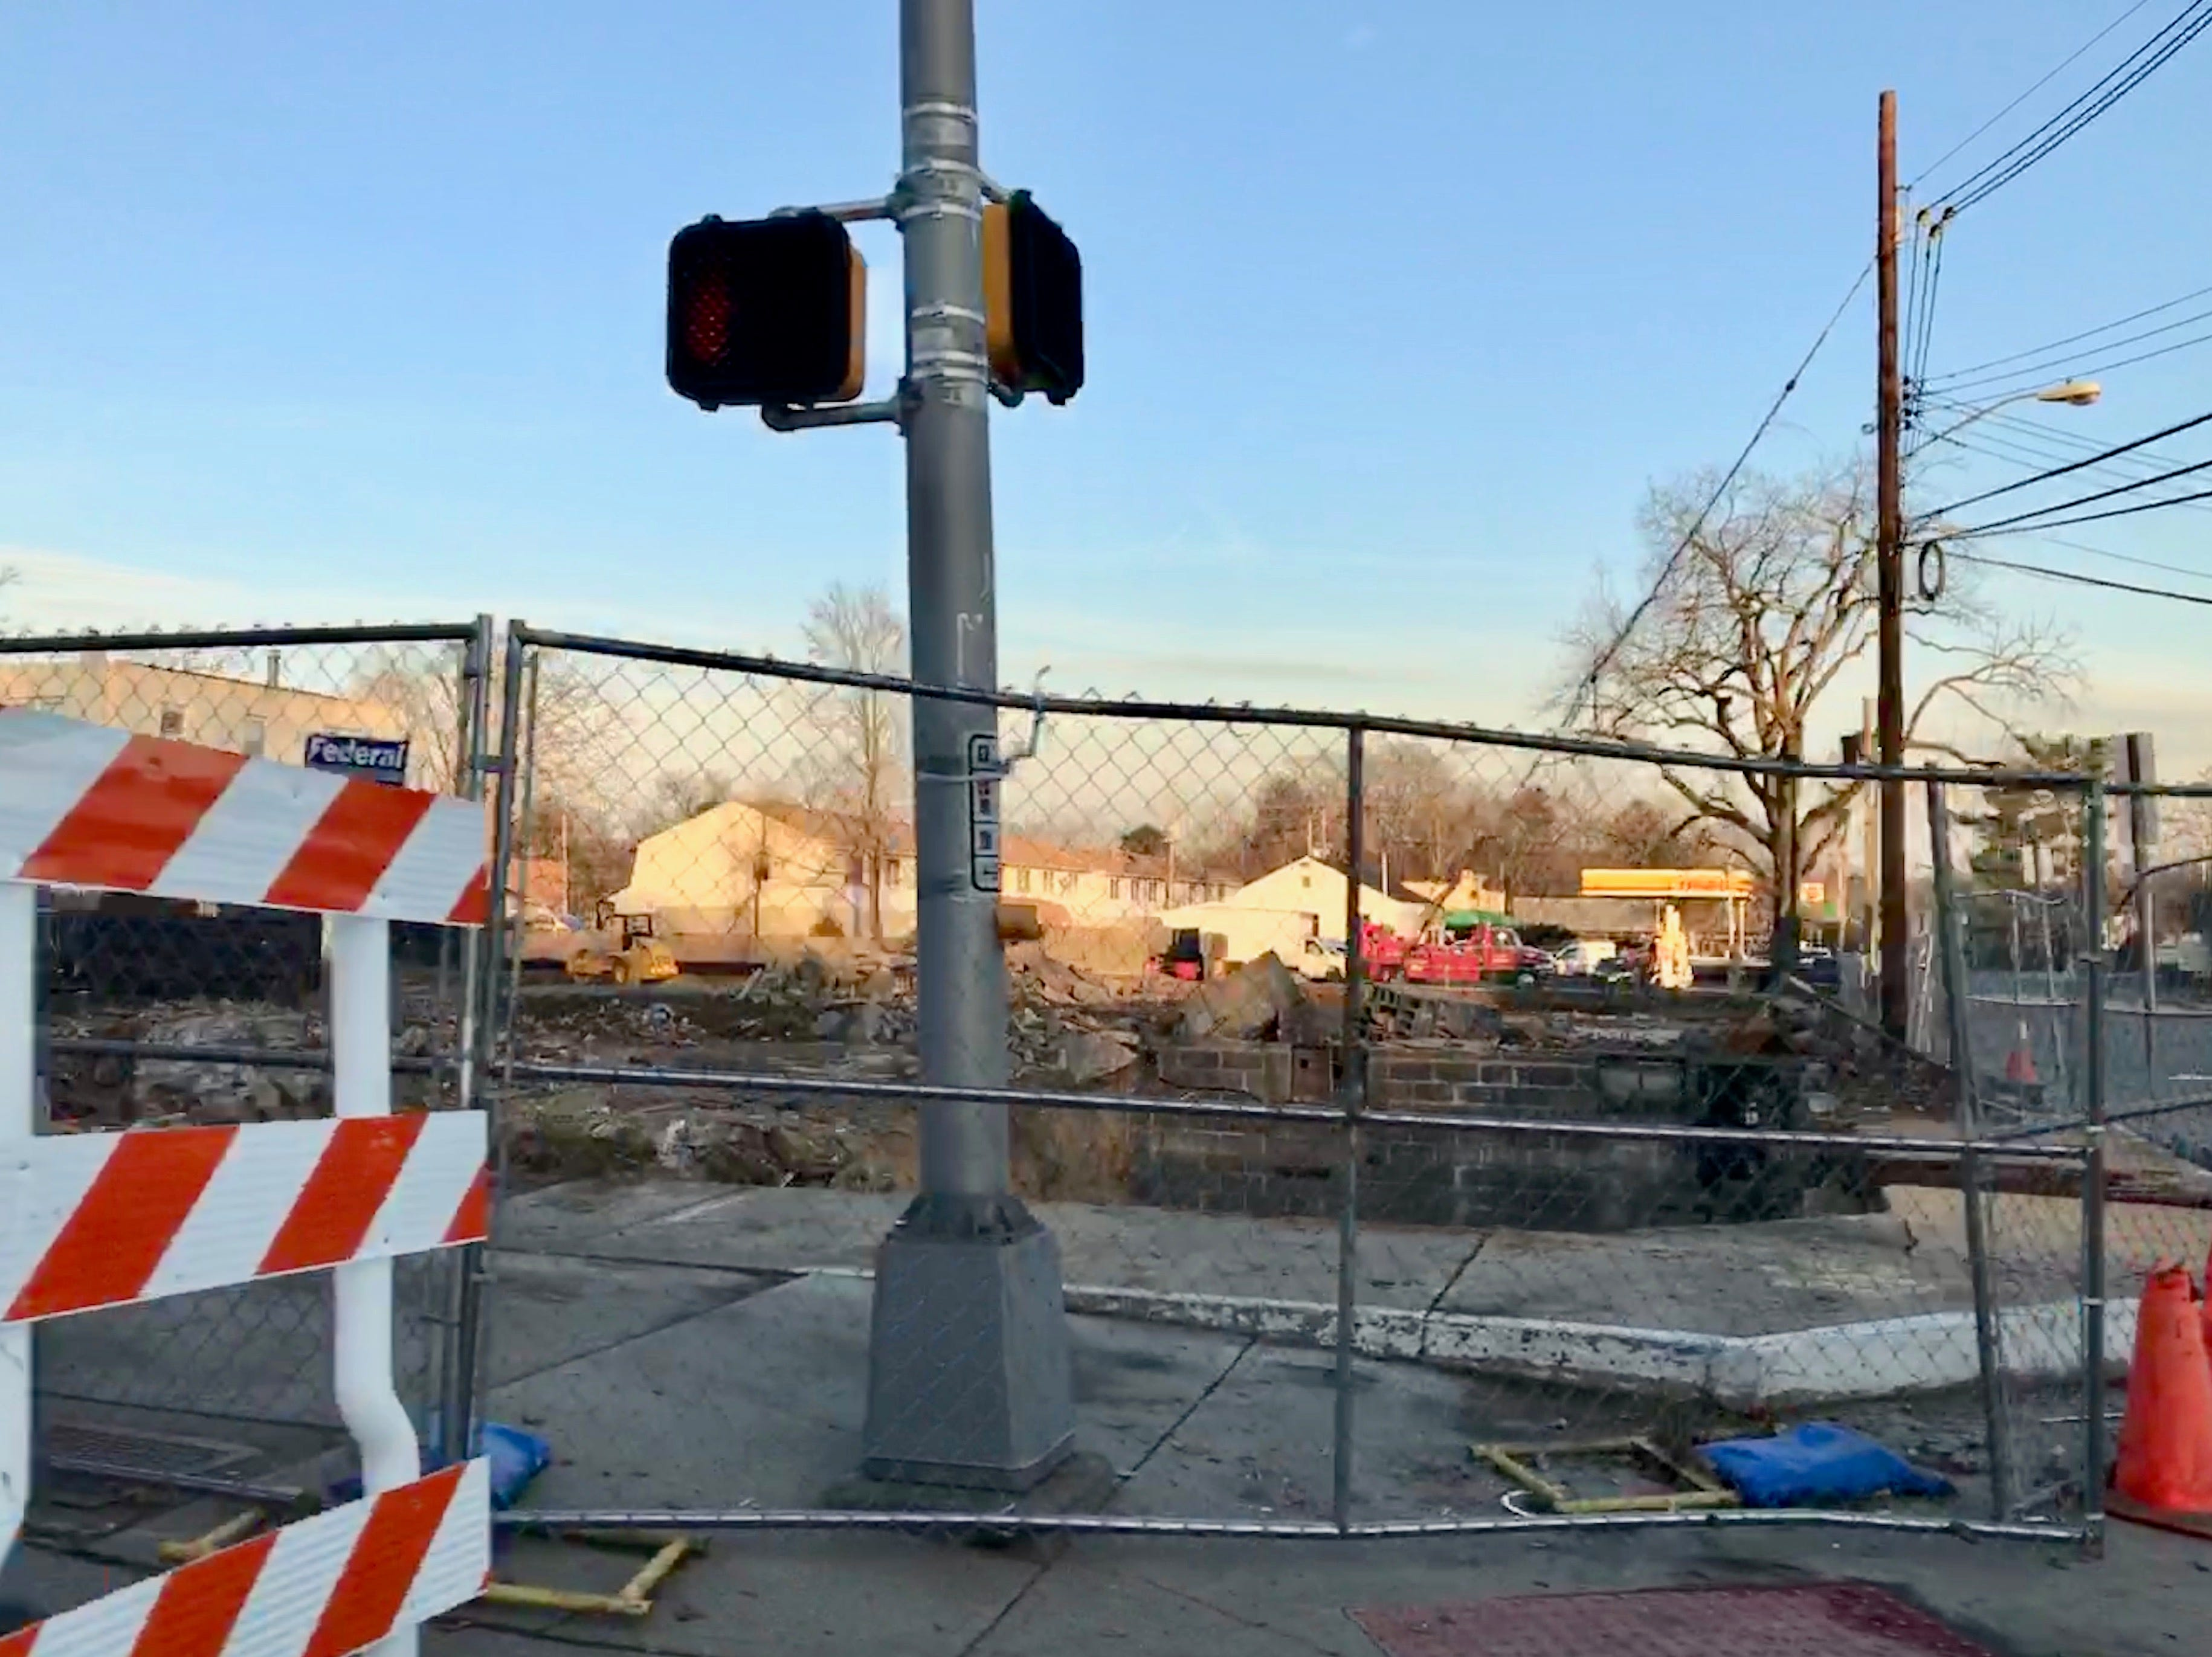 The site of the former Jones' Hardware pictured on Dec. 27, 2018 after the last building was demolished to make way for a new Chase bank.